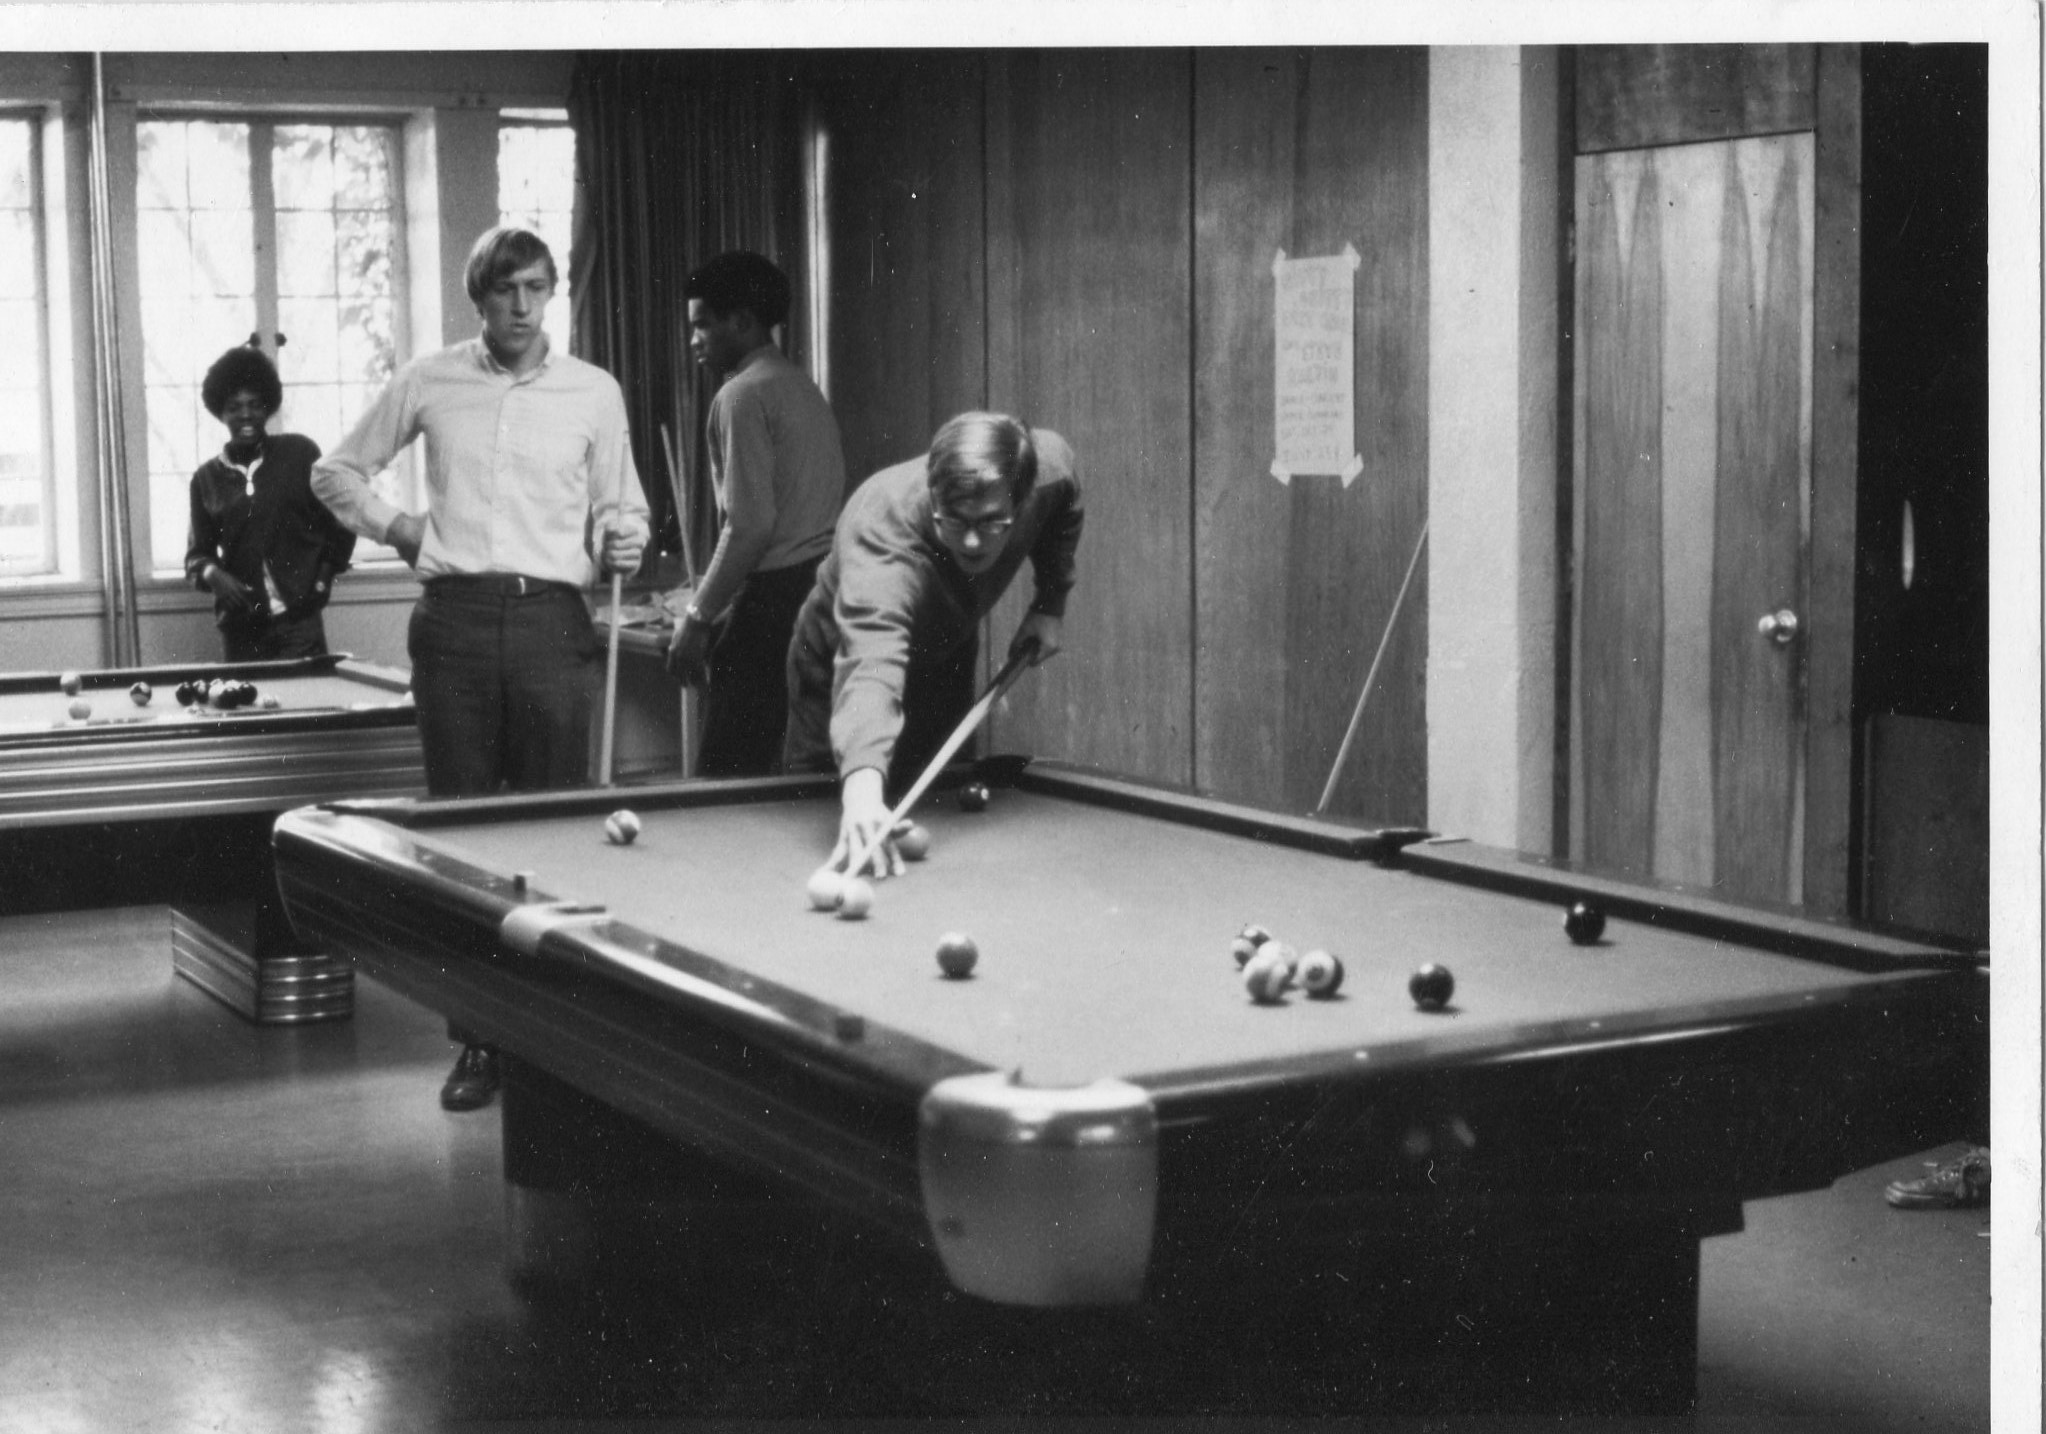 Students playing pool in the common area of Thompson